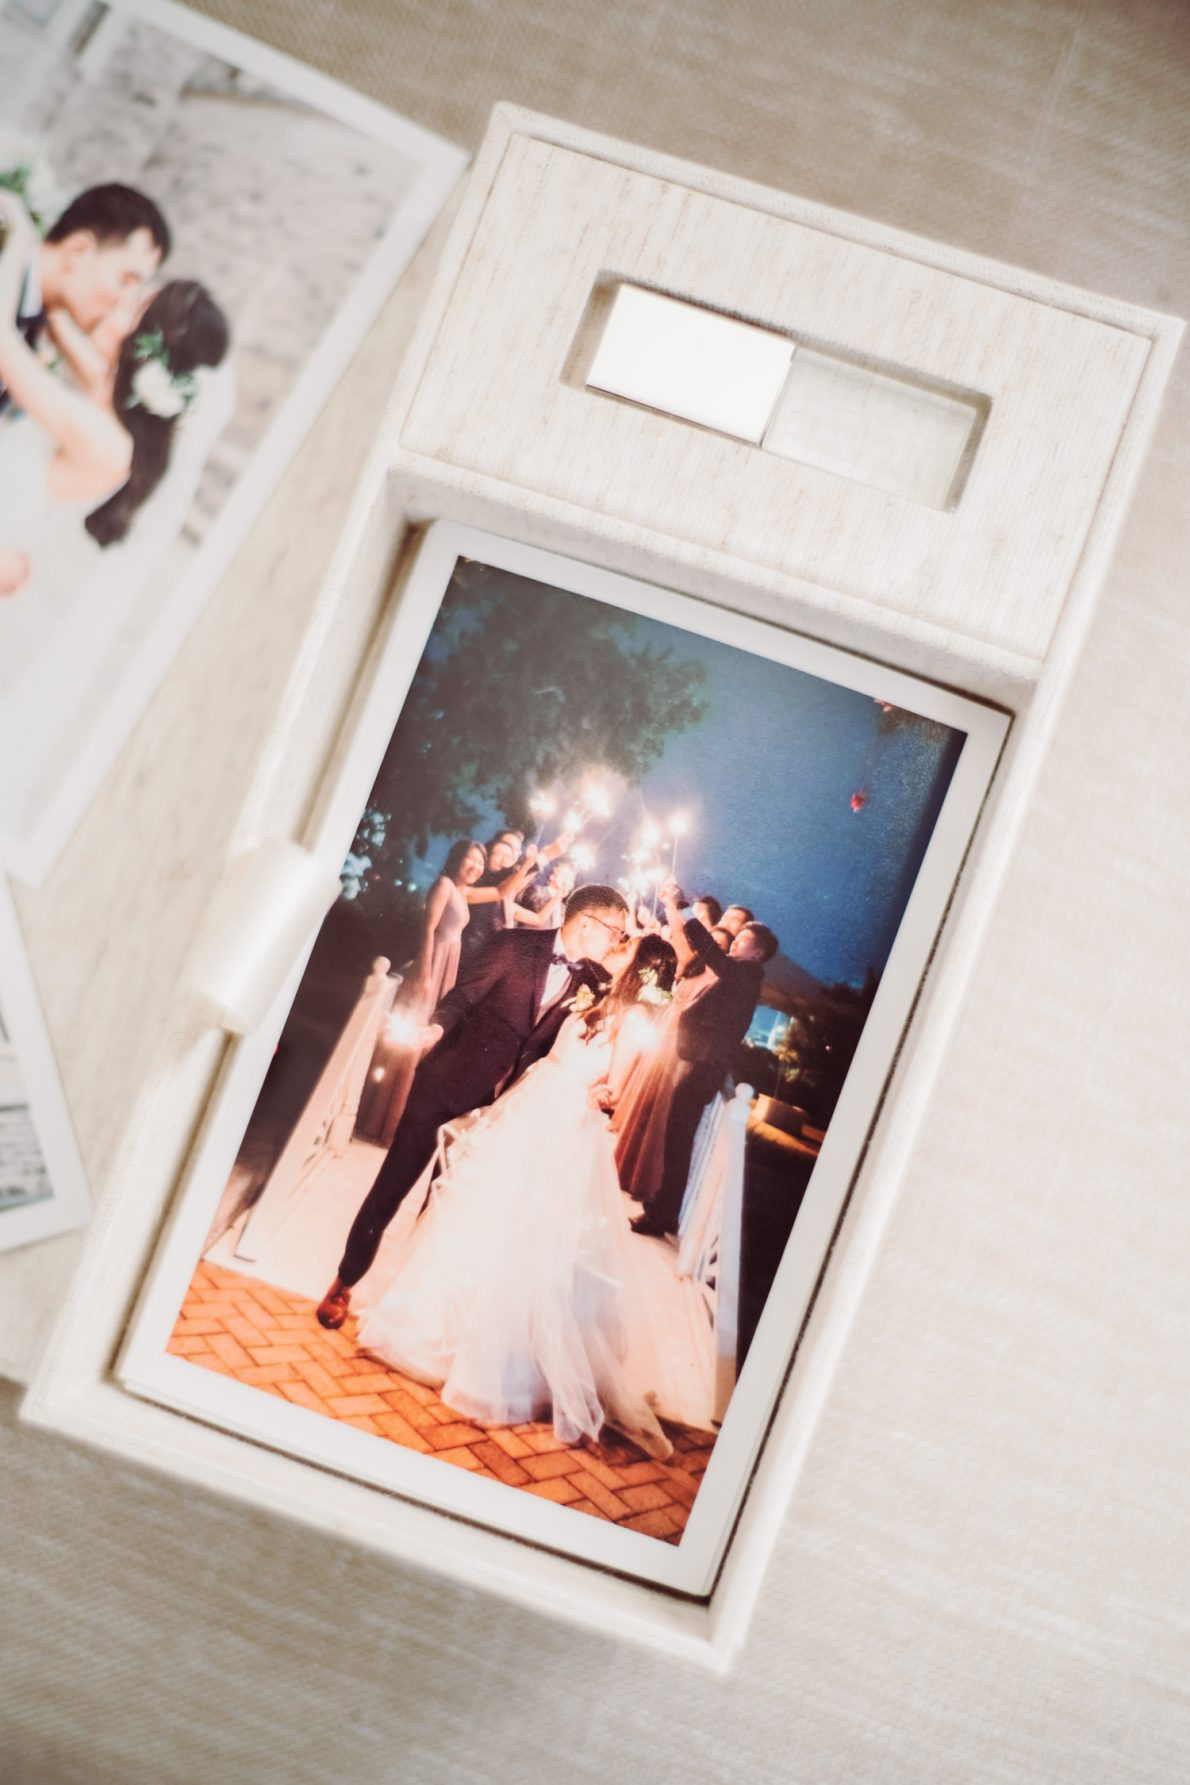 Handmade Linen Photo Box with USB Casa Loma Toronto Wedding Photos Sparkler Exit